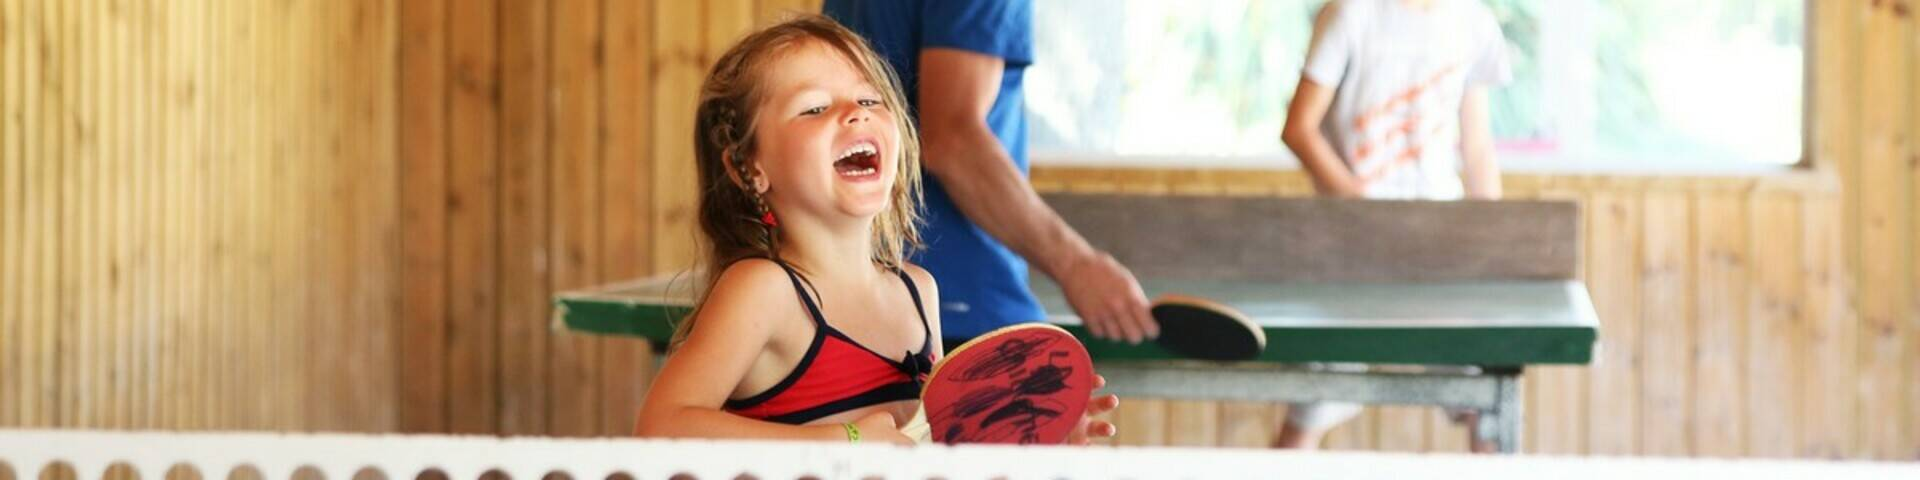 Petite fille jouant au ping-pong